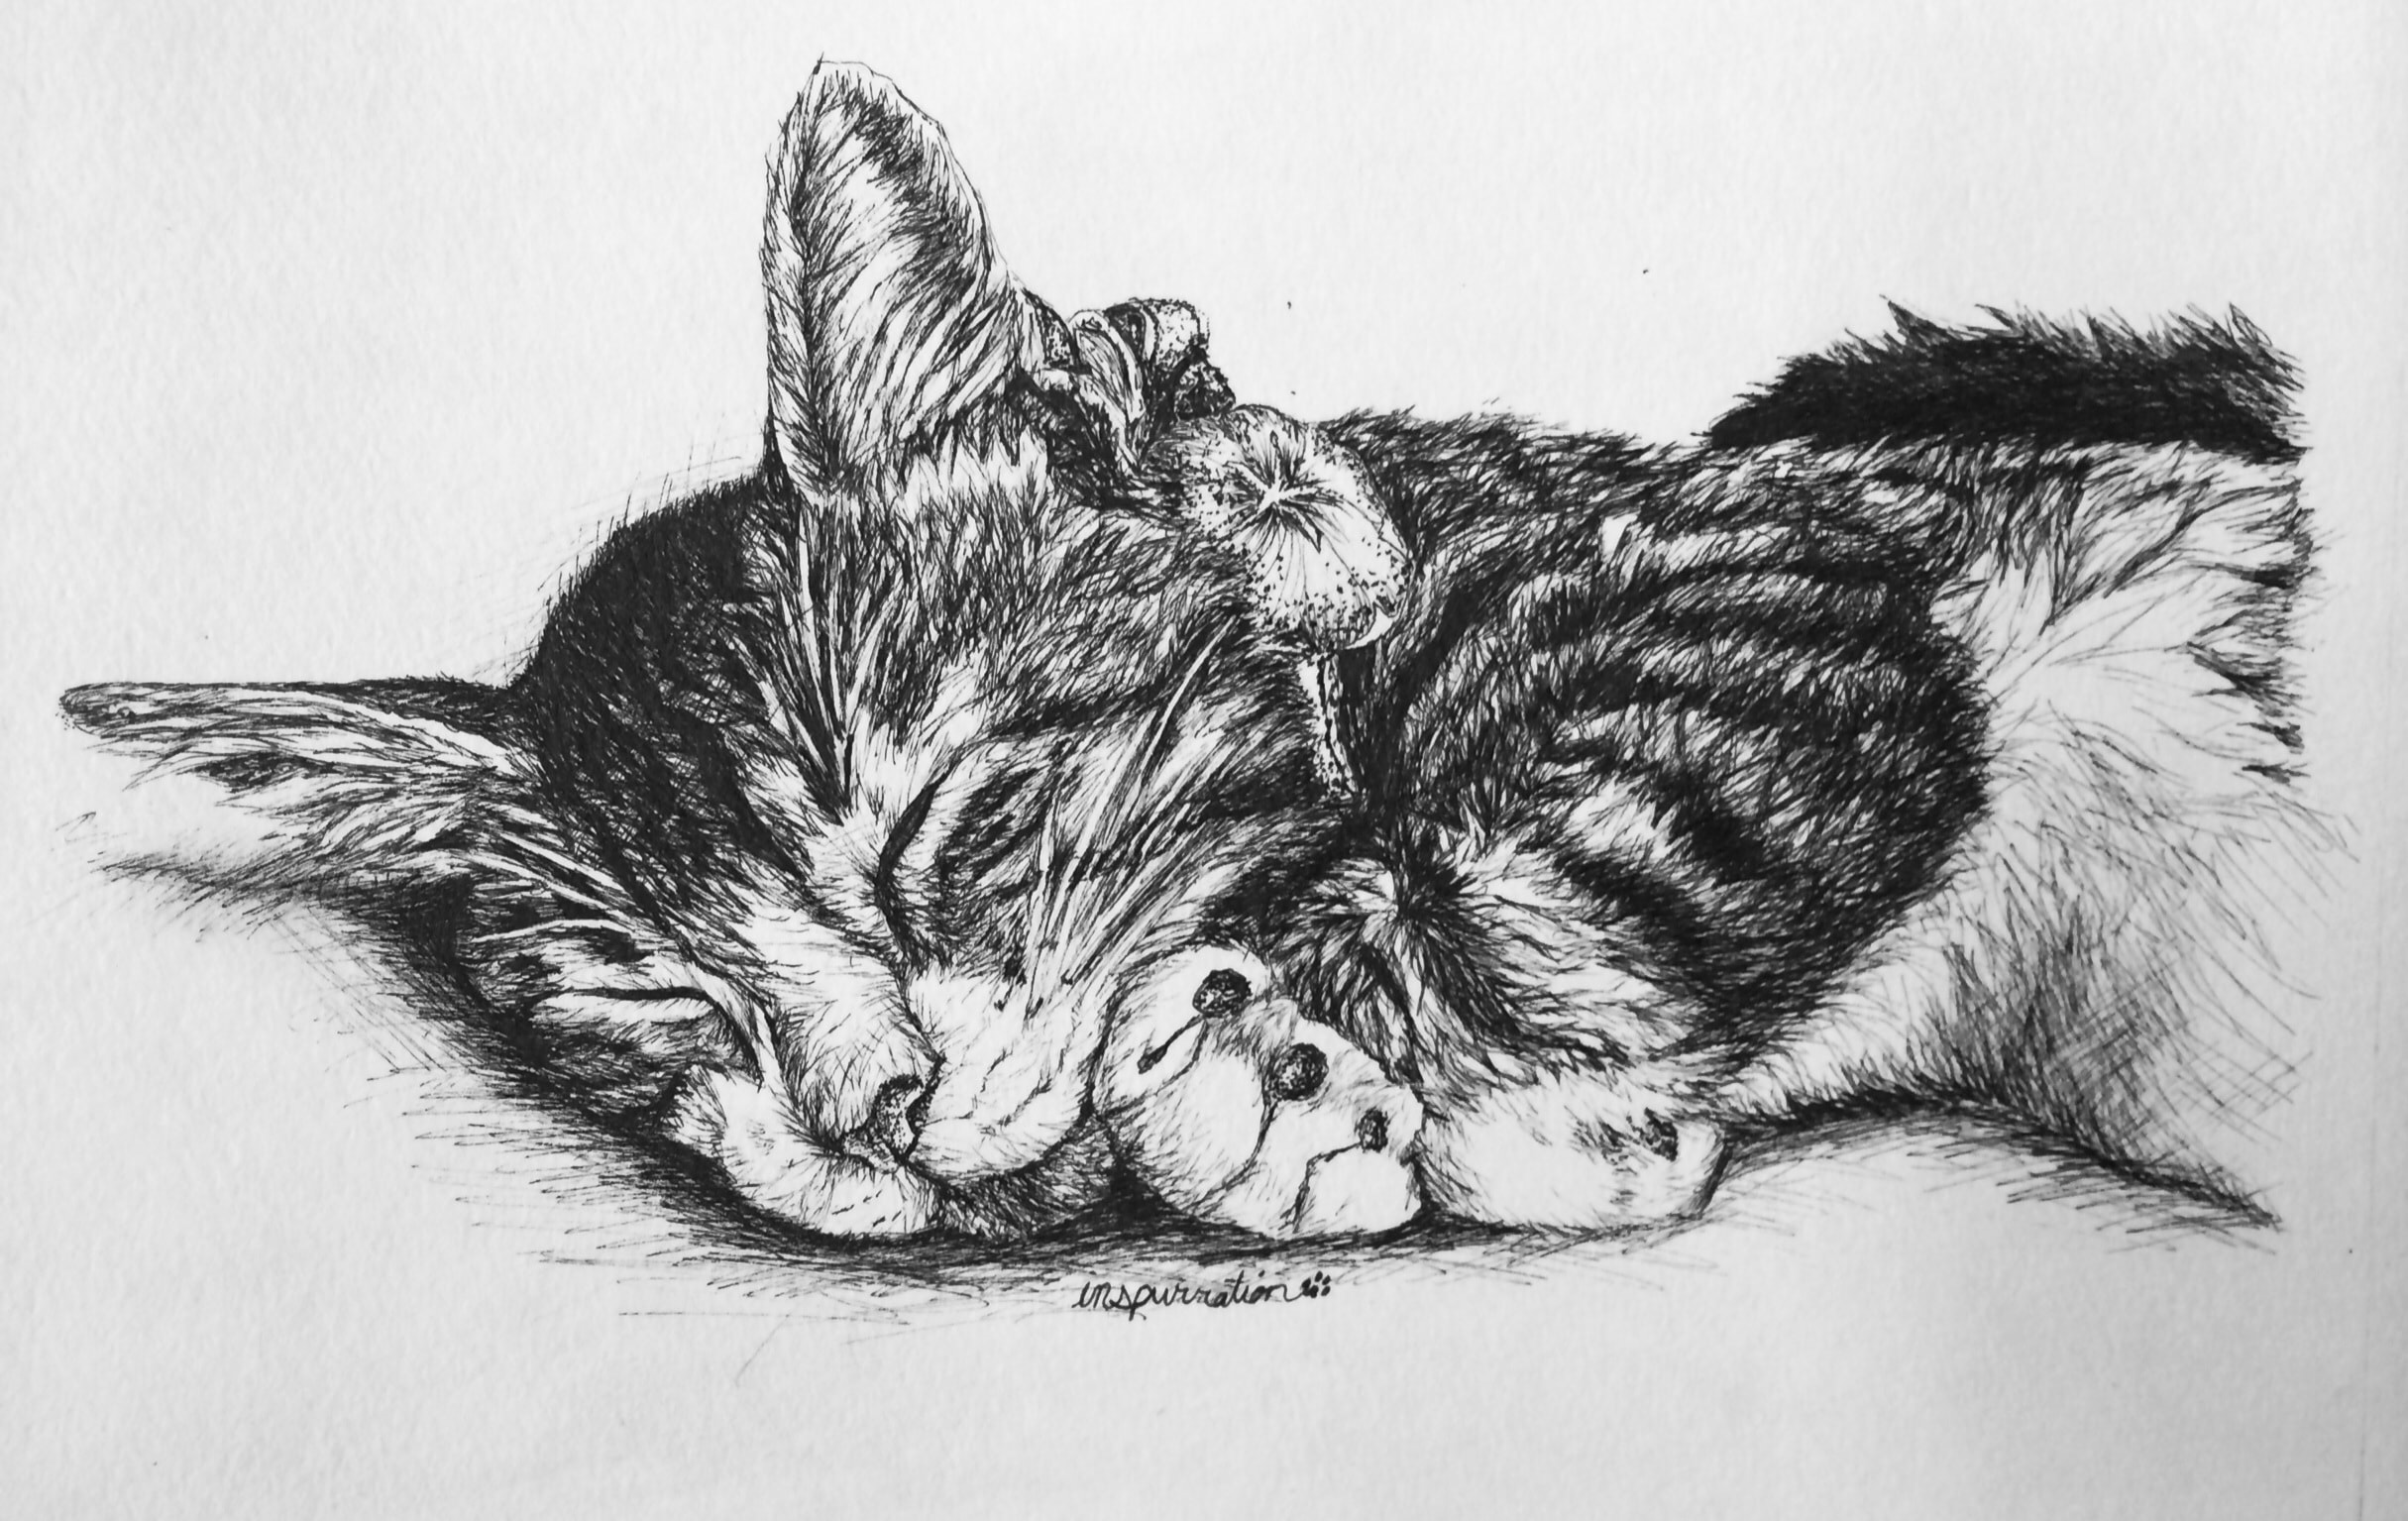 caterpillar drawing how to draw cat eyes step by step pets animals free drawing caterpillar